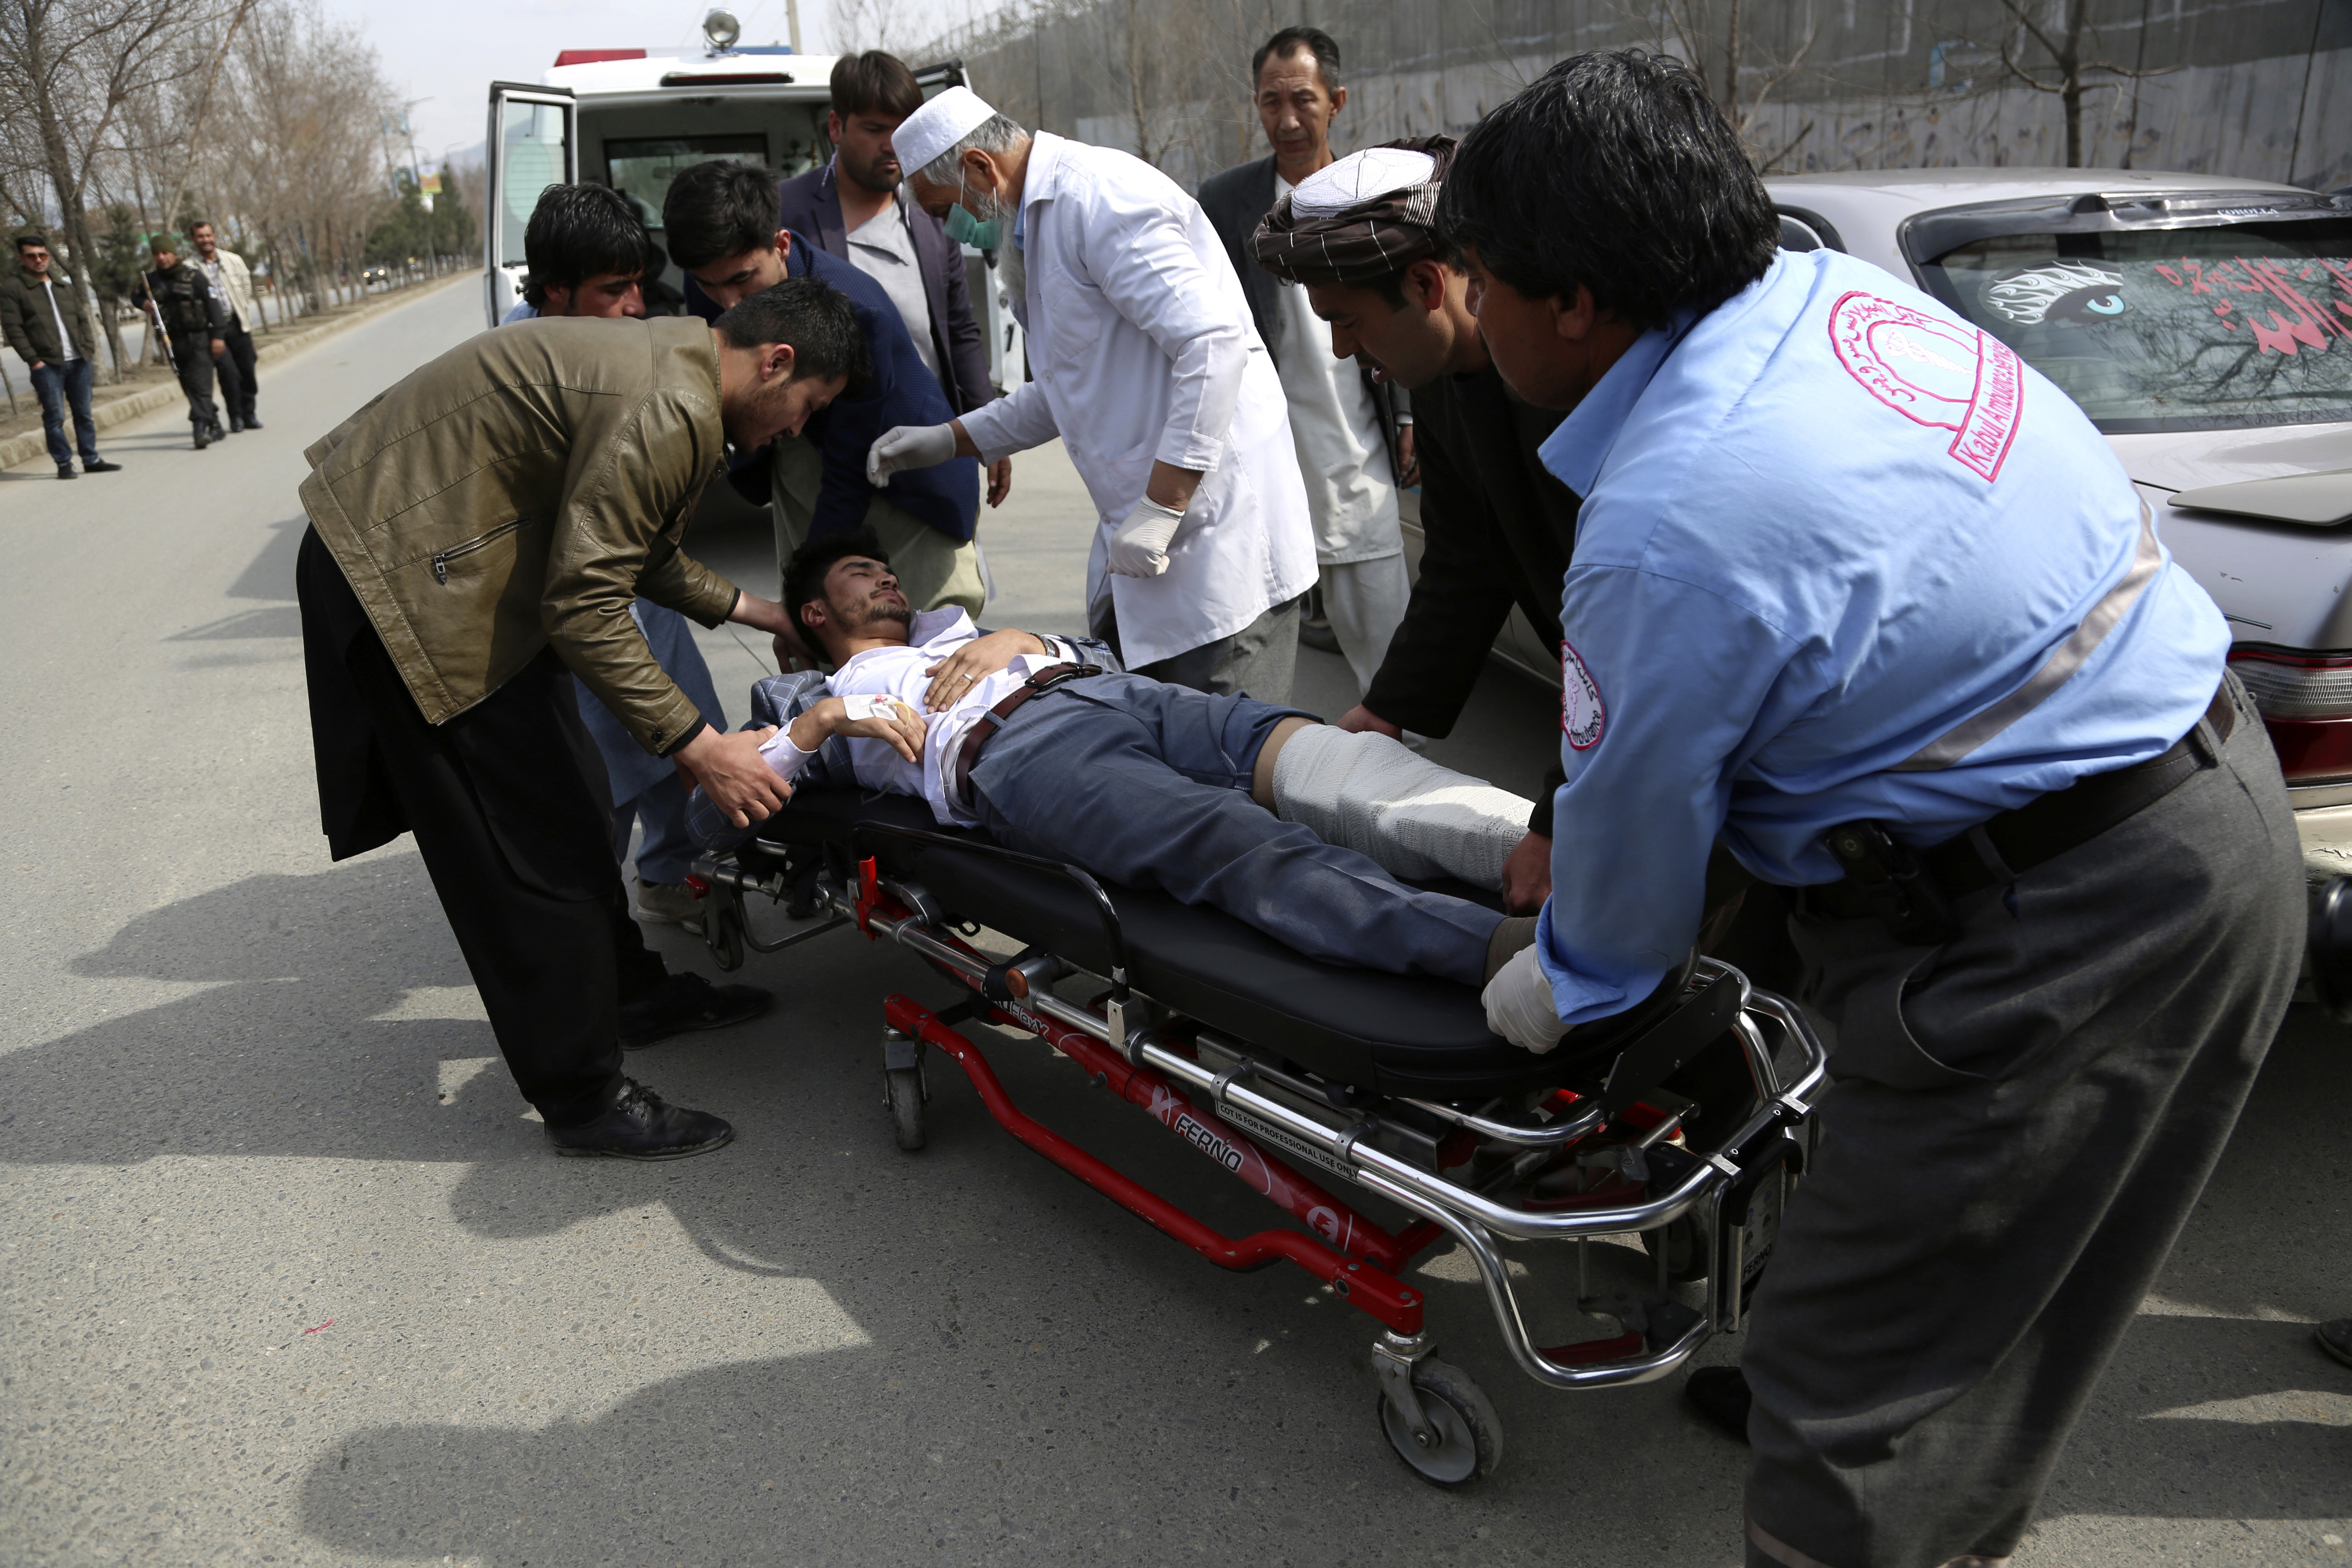 An injured man is carried into an ambulance after an attack in Kabul, Afghanistan, on March 6, 2020.